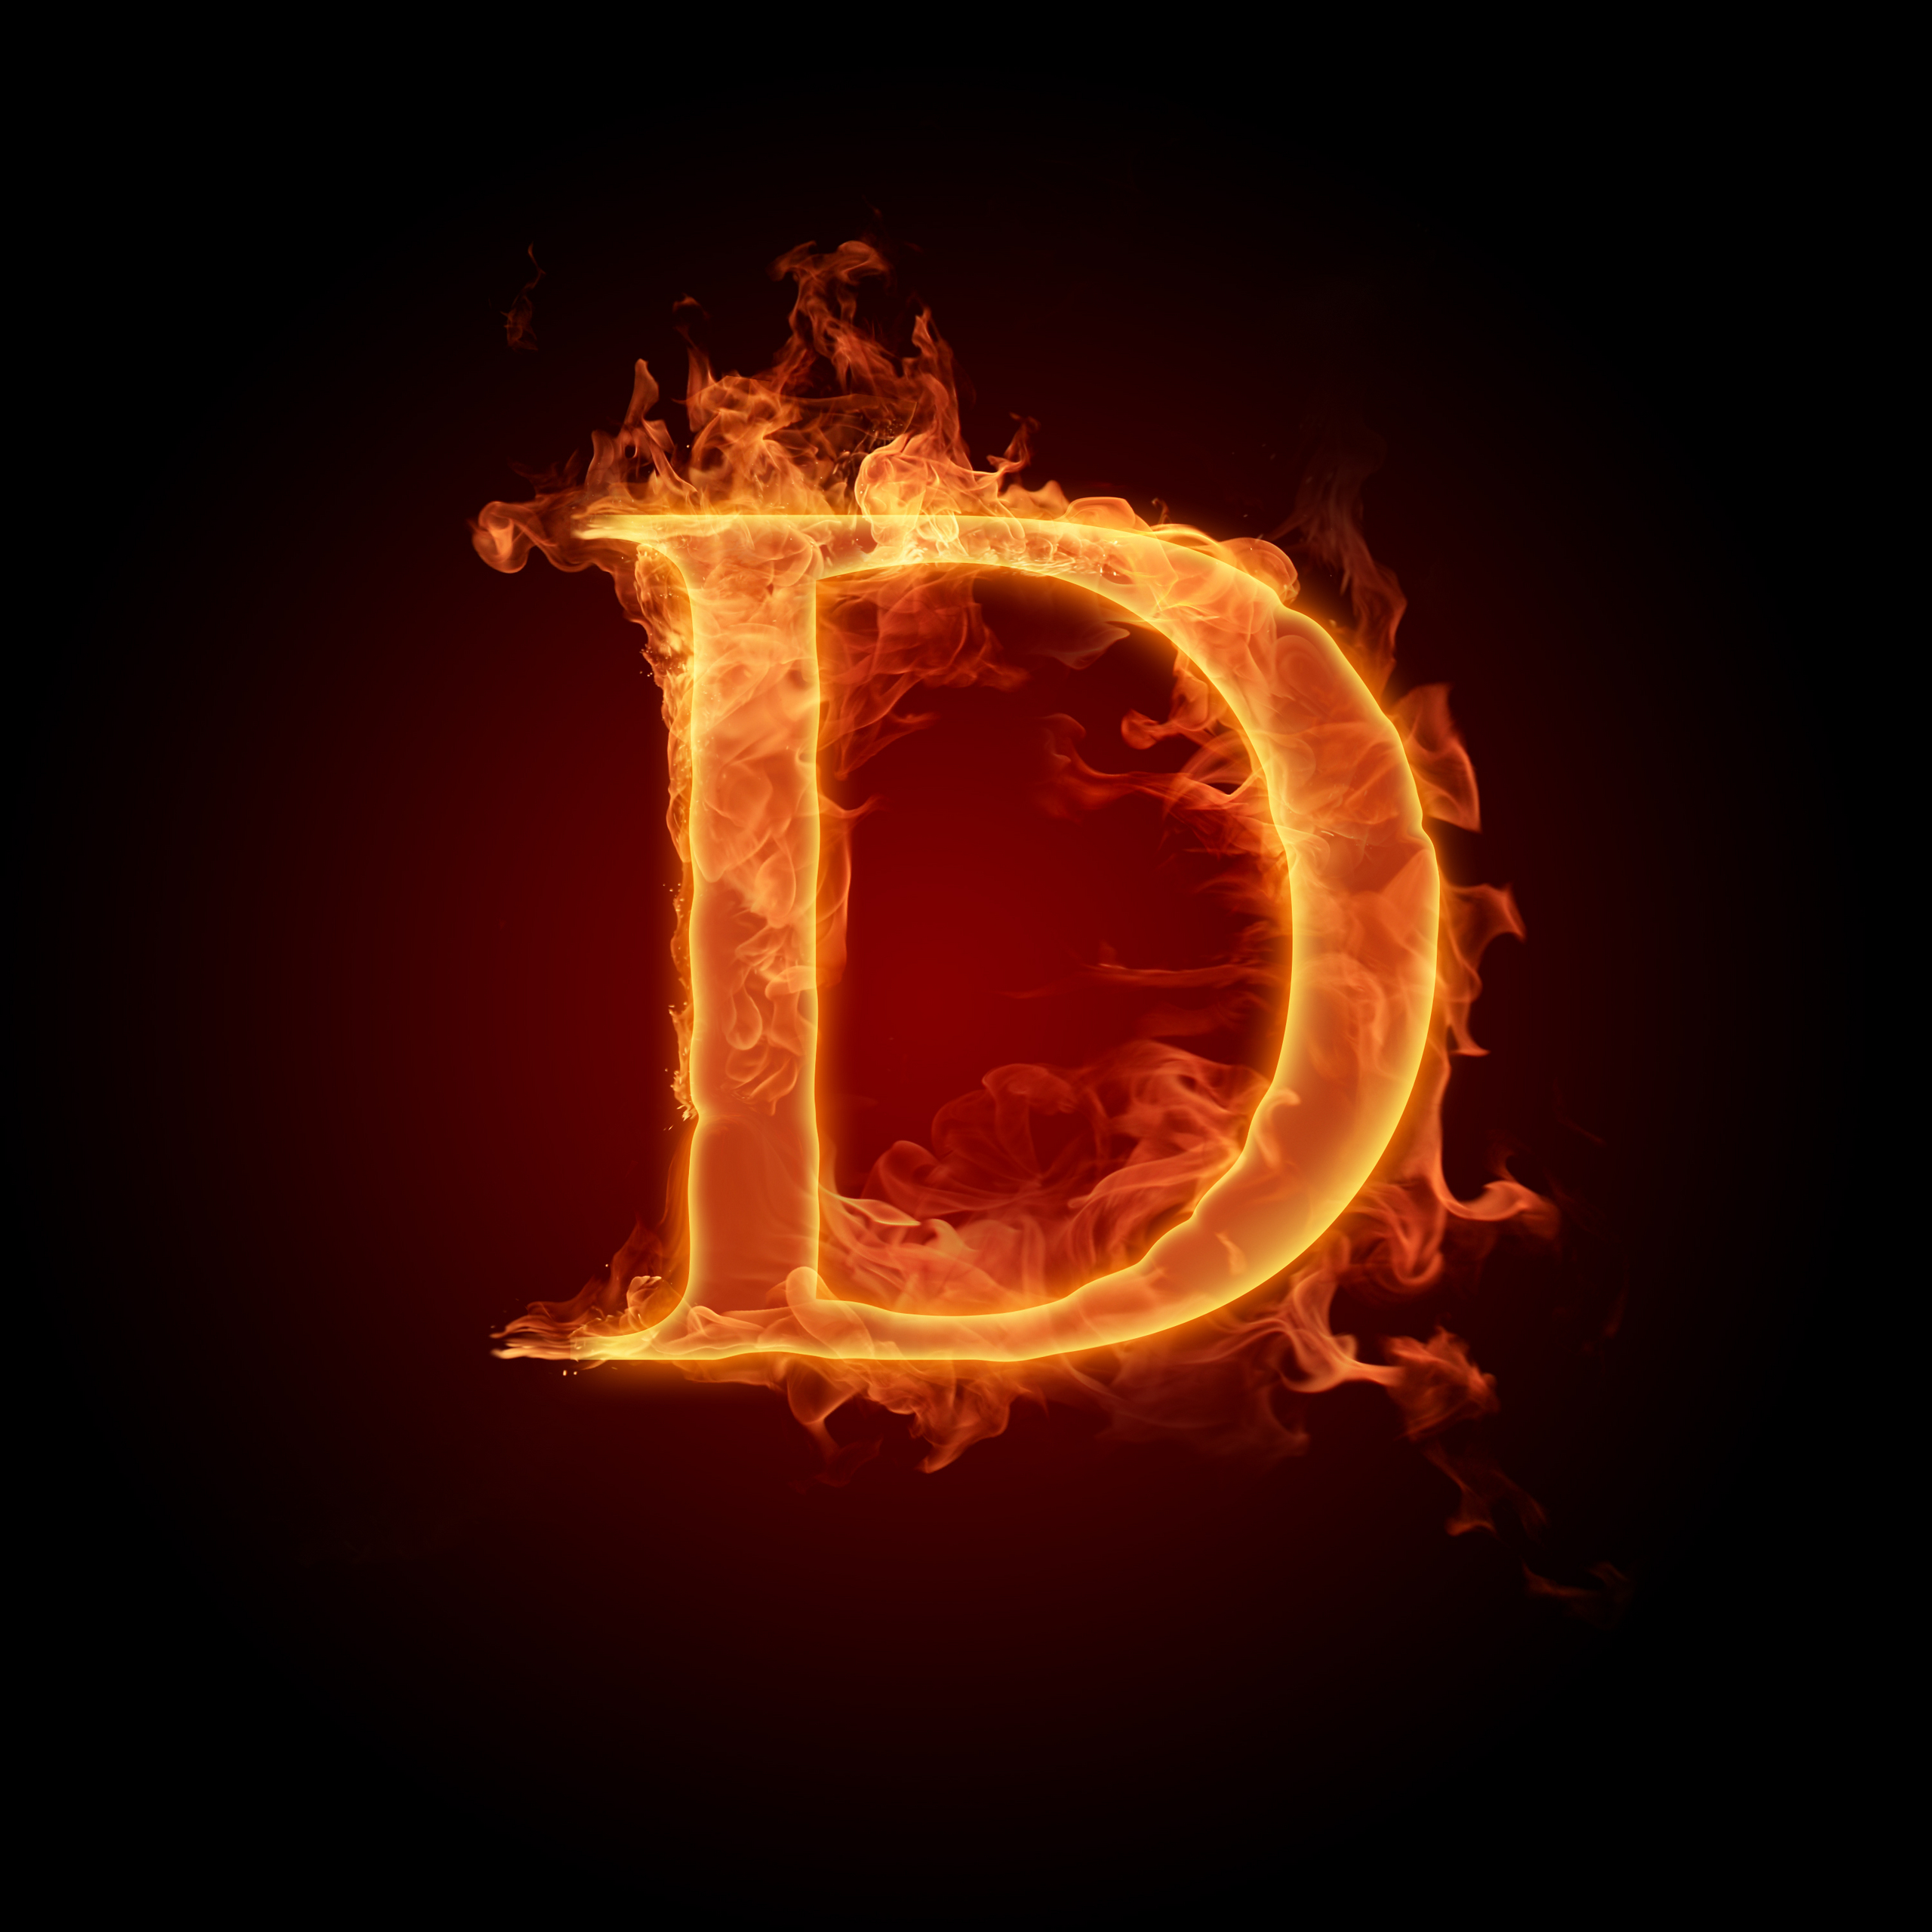 photograph relating to D&d Printable Spell Cards known as The letter D - The Letter D Photograph (22215873) - Fanpop